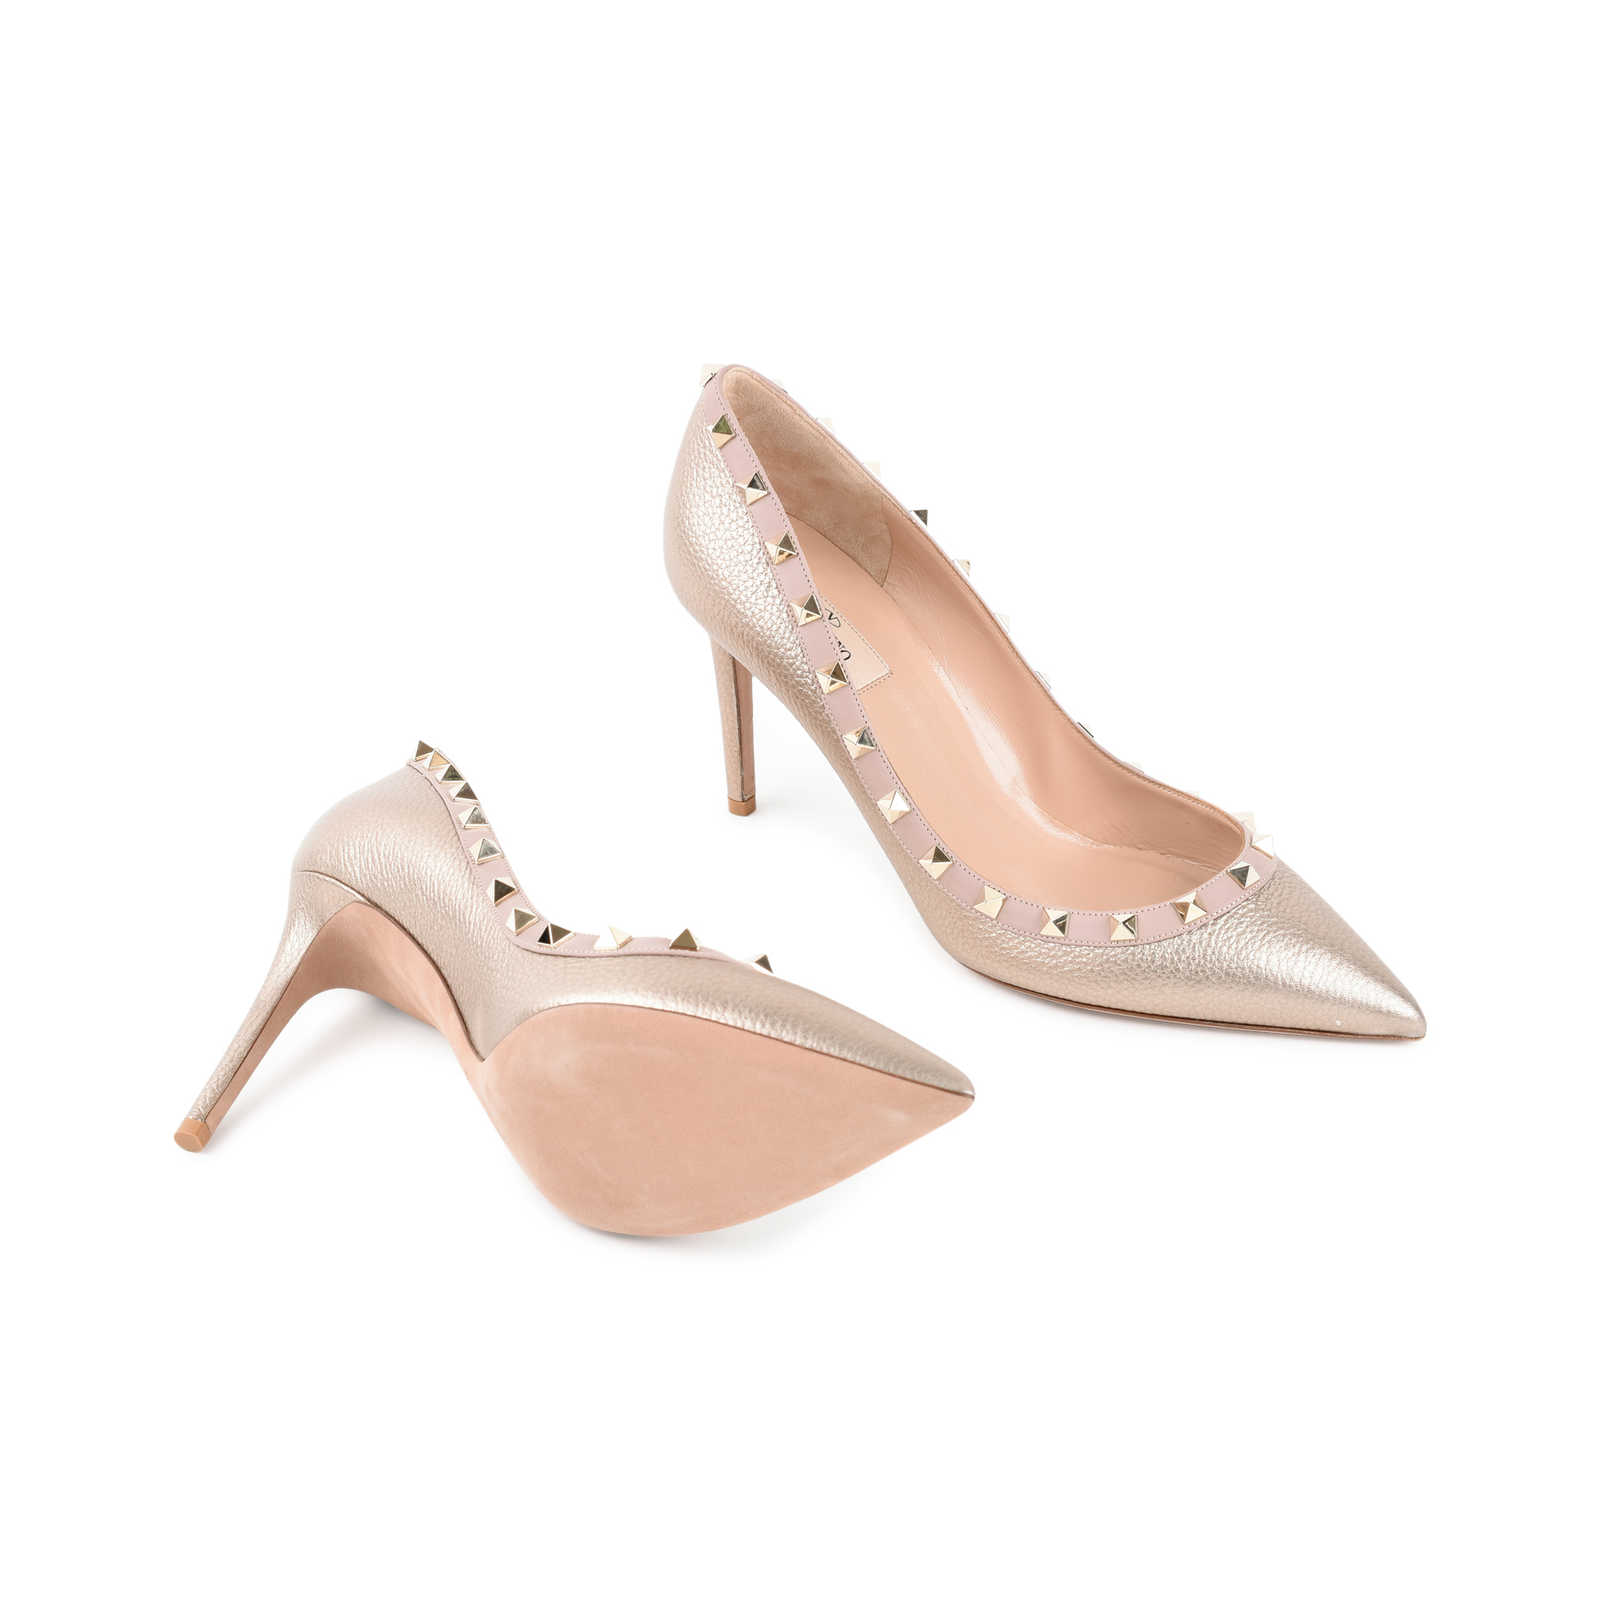 cfc78f601 ... Authentic Second Hand Valentino Rockstud Pumps (PSS-470-00001) -  Thumbnail 1 ...